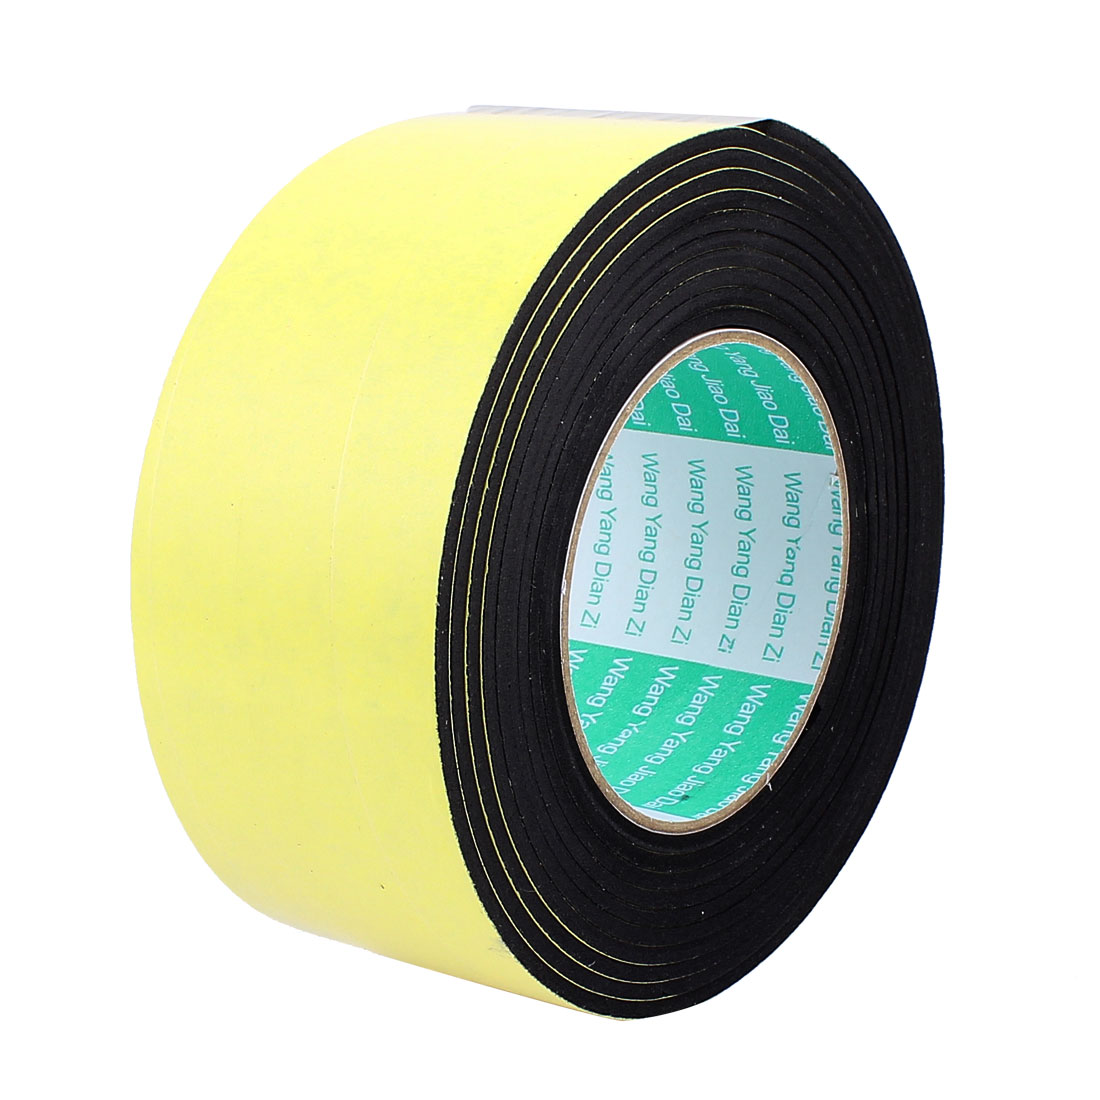 6Cm Width 4M Length 3Mm Thick Single Sided Sealing Shockproof Sponge Tape Other Areas Around The House Self-adhesive Application6Cm Width 4M Length 3Mm Thick Single Sided Sealing Shockproof Sponge Tape Other Areas Around The House Self-adhesive Application